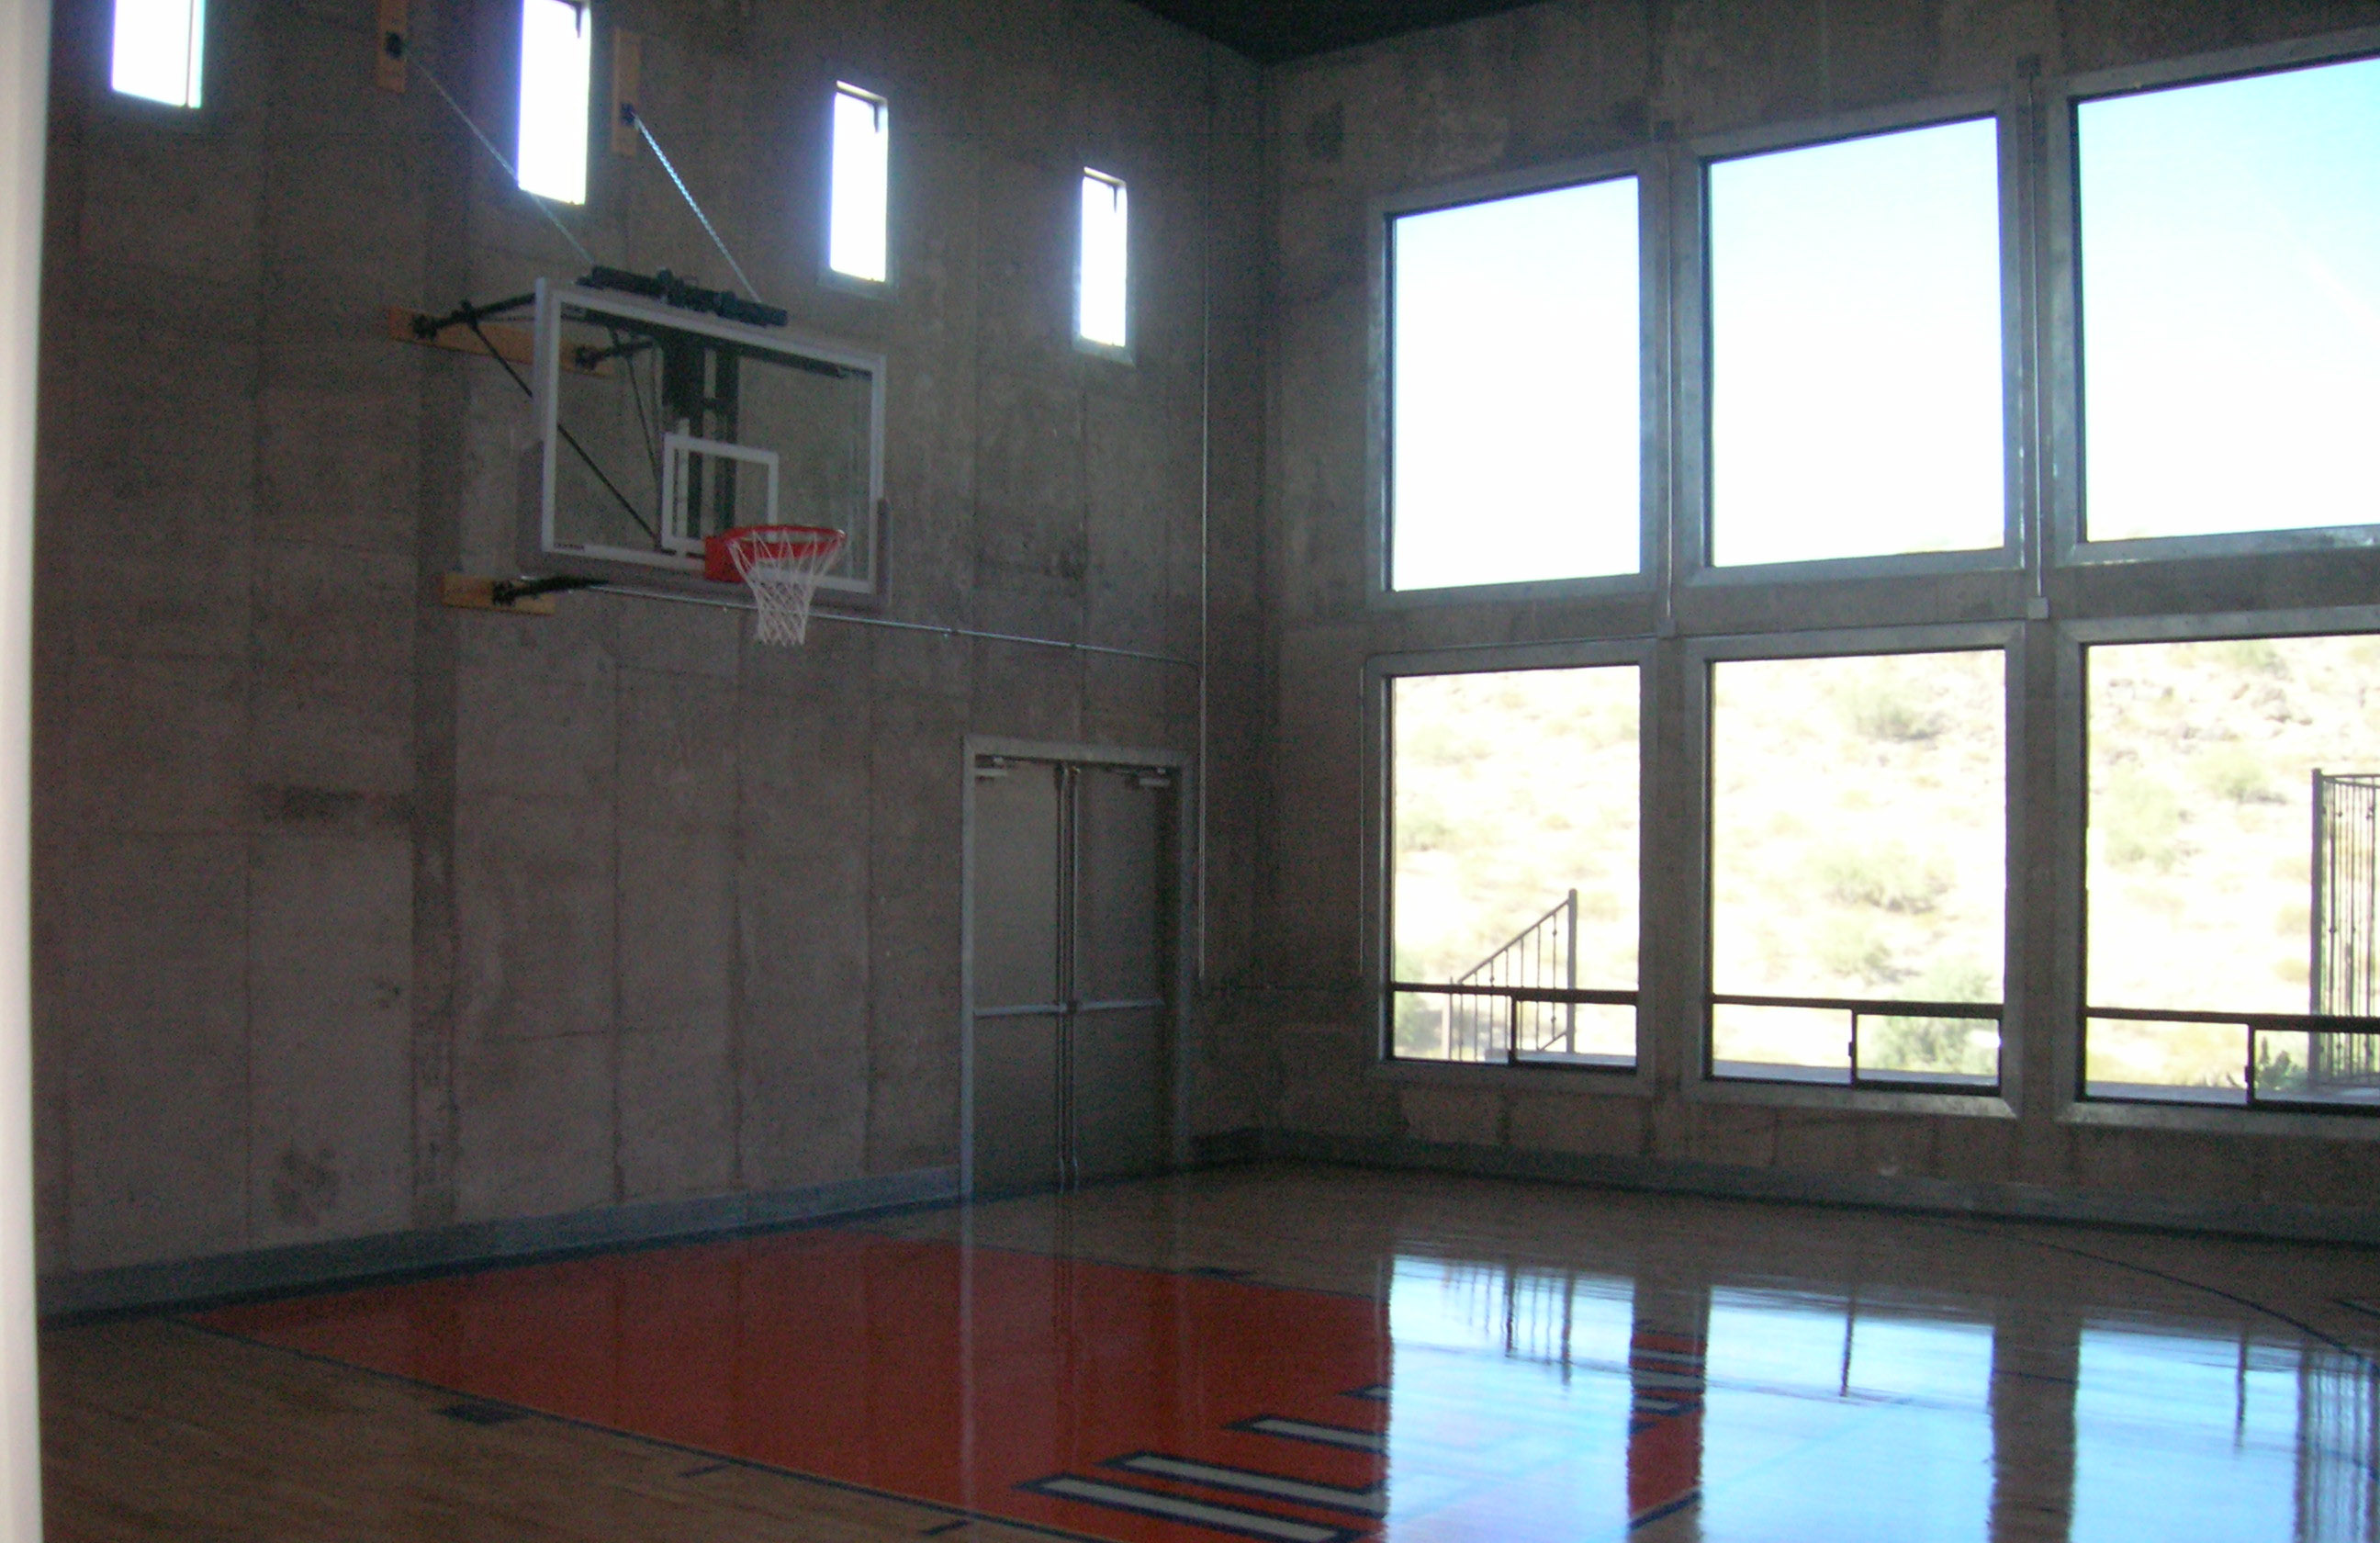 Indoor basketball court archives i plan llc custom for Indoor basketball court design